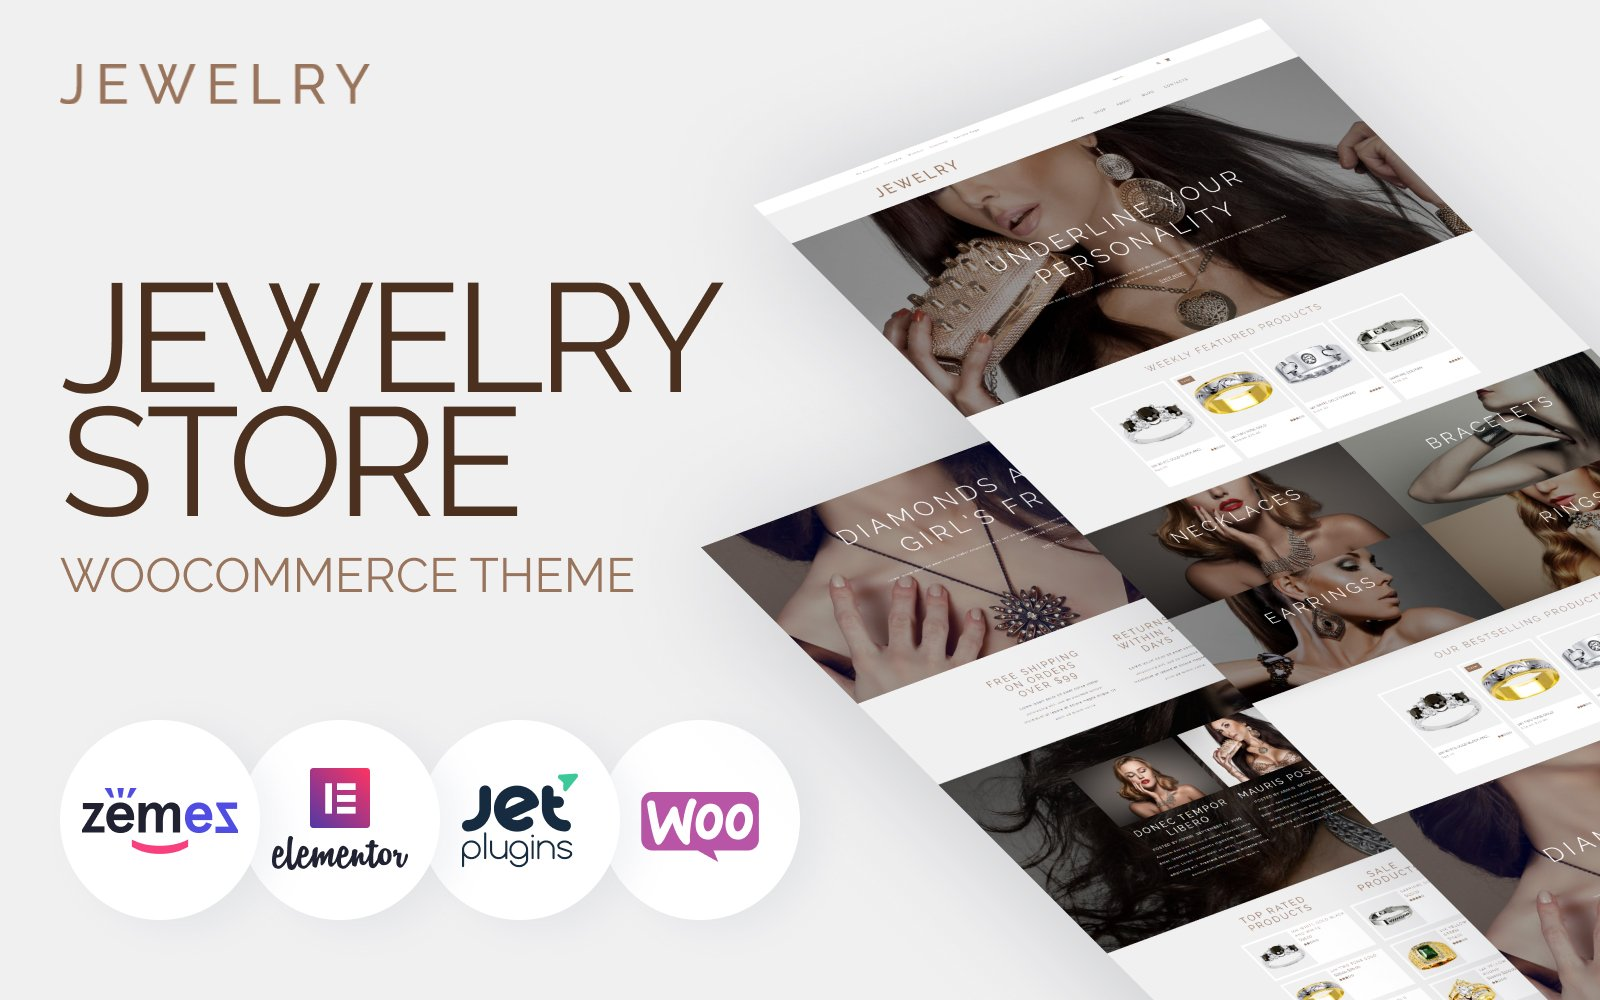 """Jewelry - Jewelry Website Design Template for Online Shops"" 响应式WooCommerce模板 #53421 - 截图"